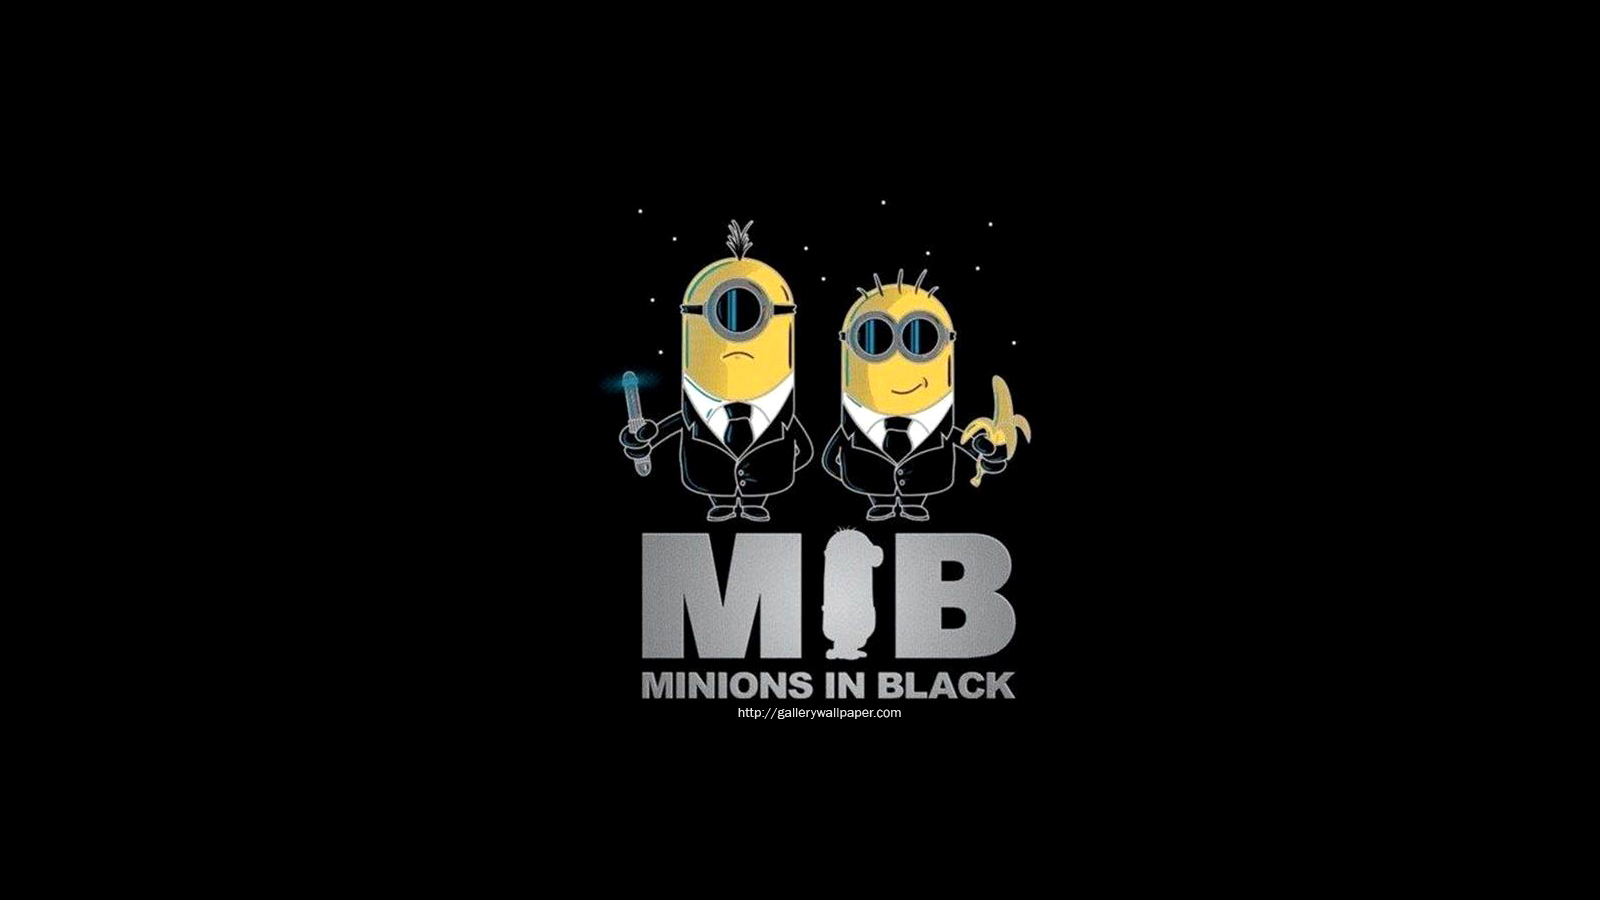 Minions In Black Funny Wallpaper HD Wallpaper with 1600x900 Resolution 1600x900